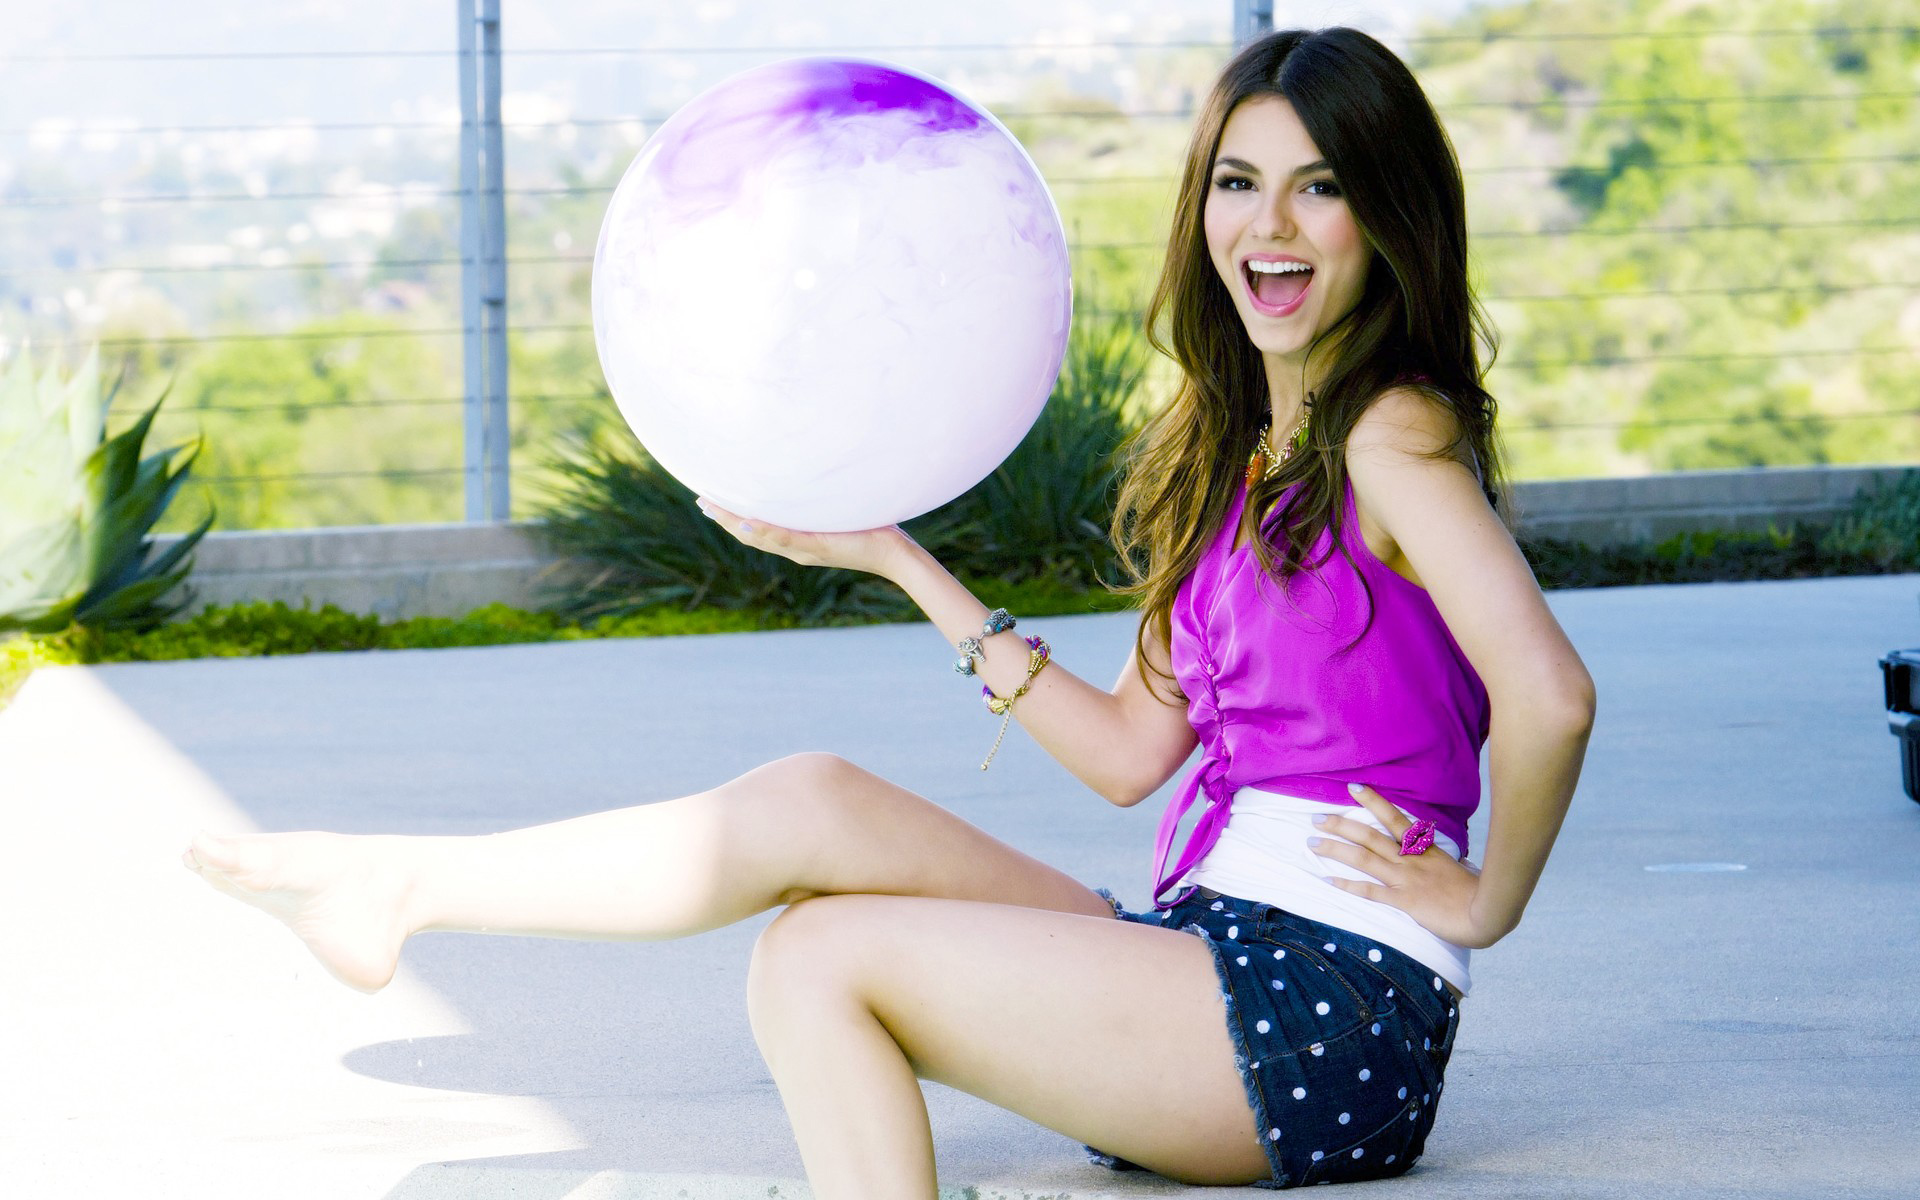 Victoria Justice 3 Wallpapers HD Wallpapers 1920x1200